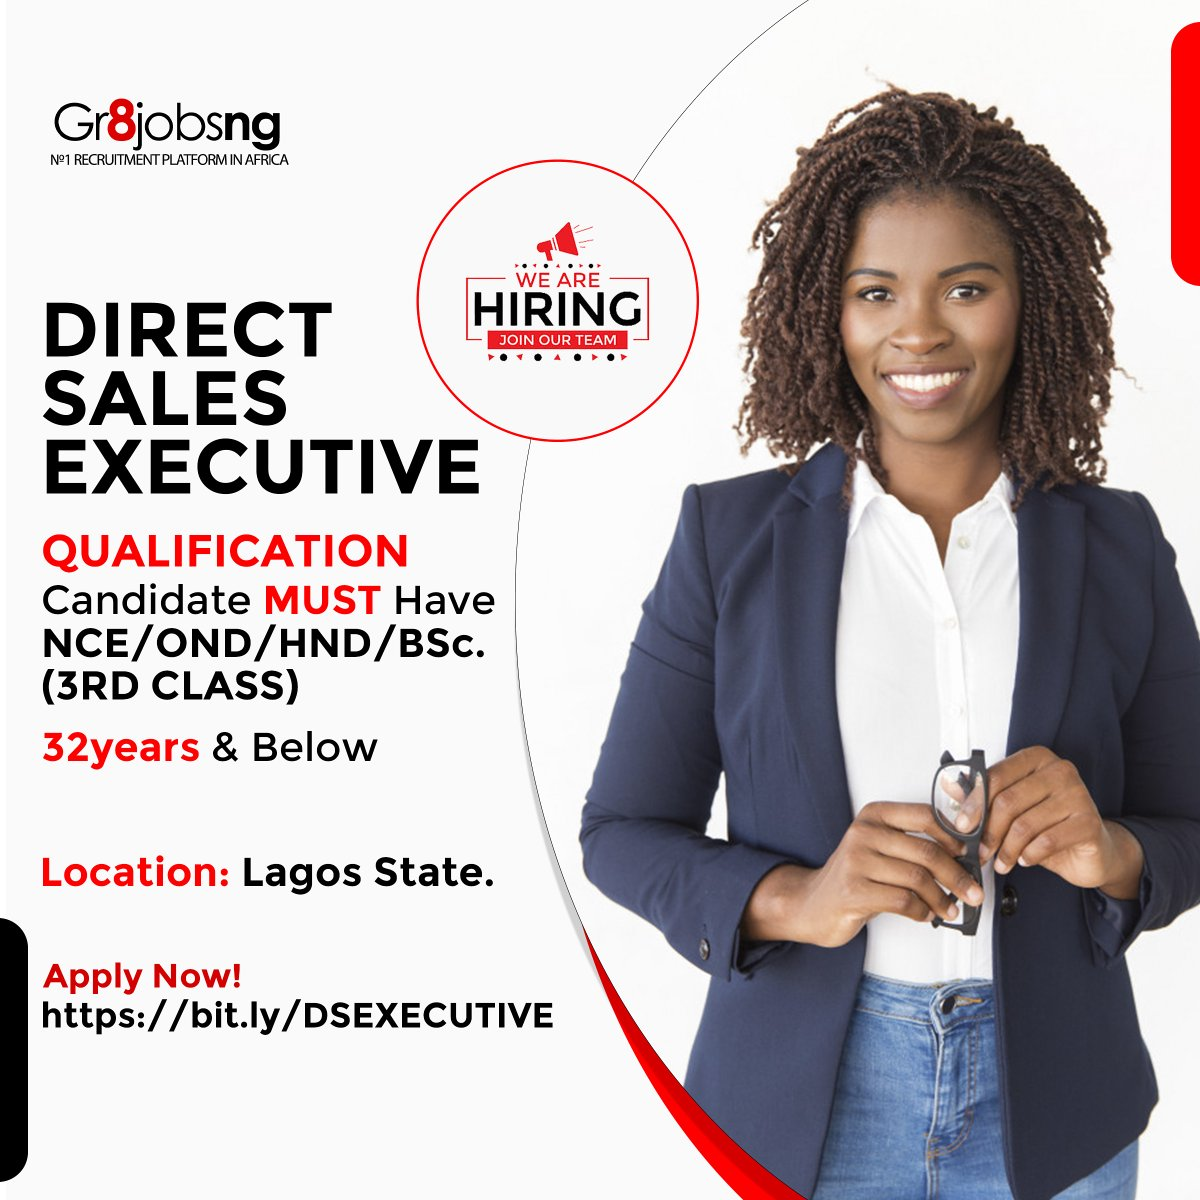 We are recruiting for the role of DIRECT SALES EXECUTIVES  Candidate must have NCE/OND/HND/BACHELOR'S DEGREE (3RD CLASS)  32Years and below  Location: Lagos  Apply Now!  #MondayMotivation #mondaythoughts #gr8jobsng